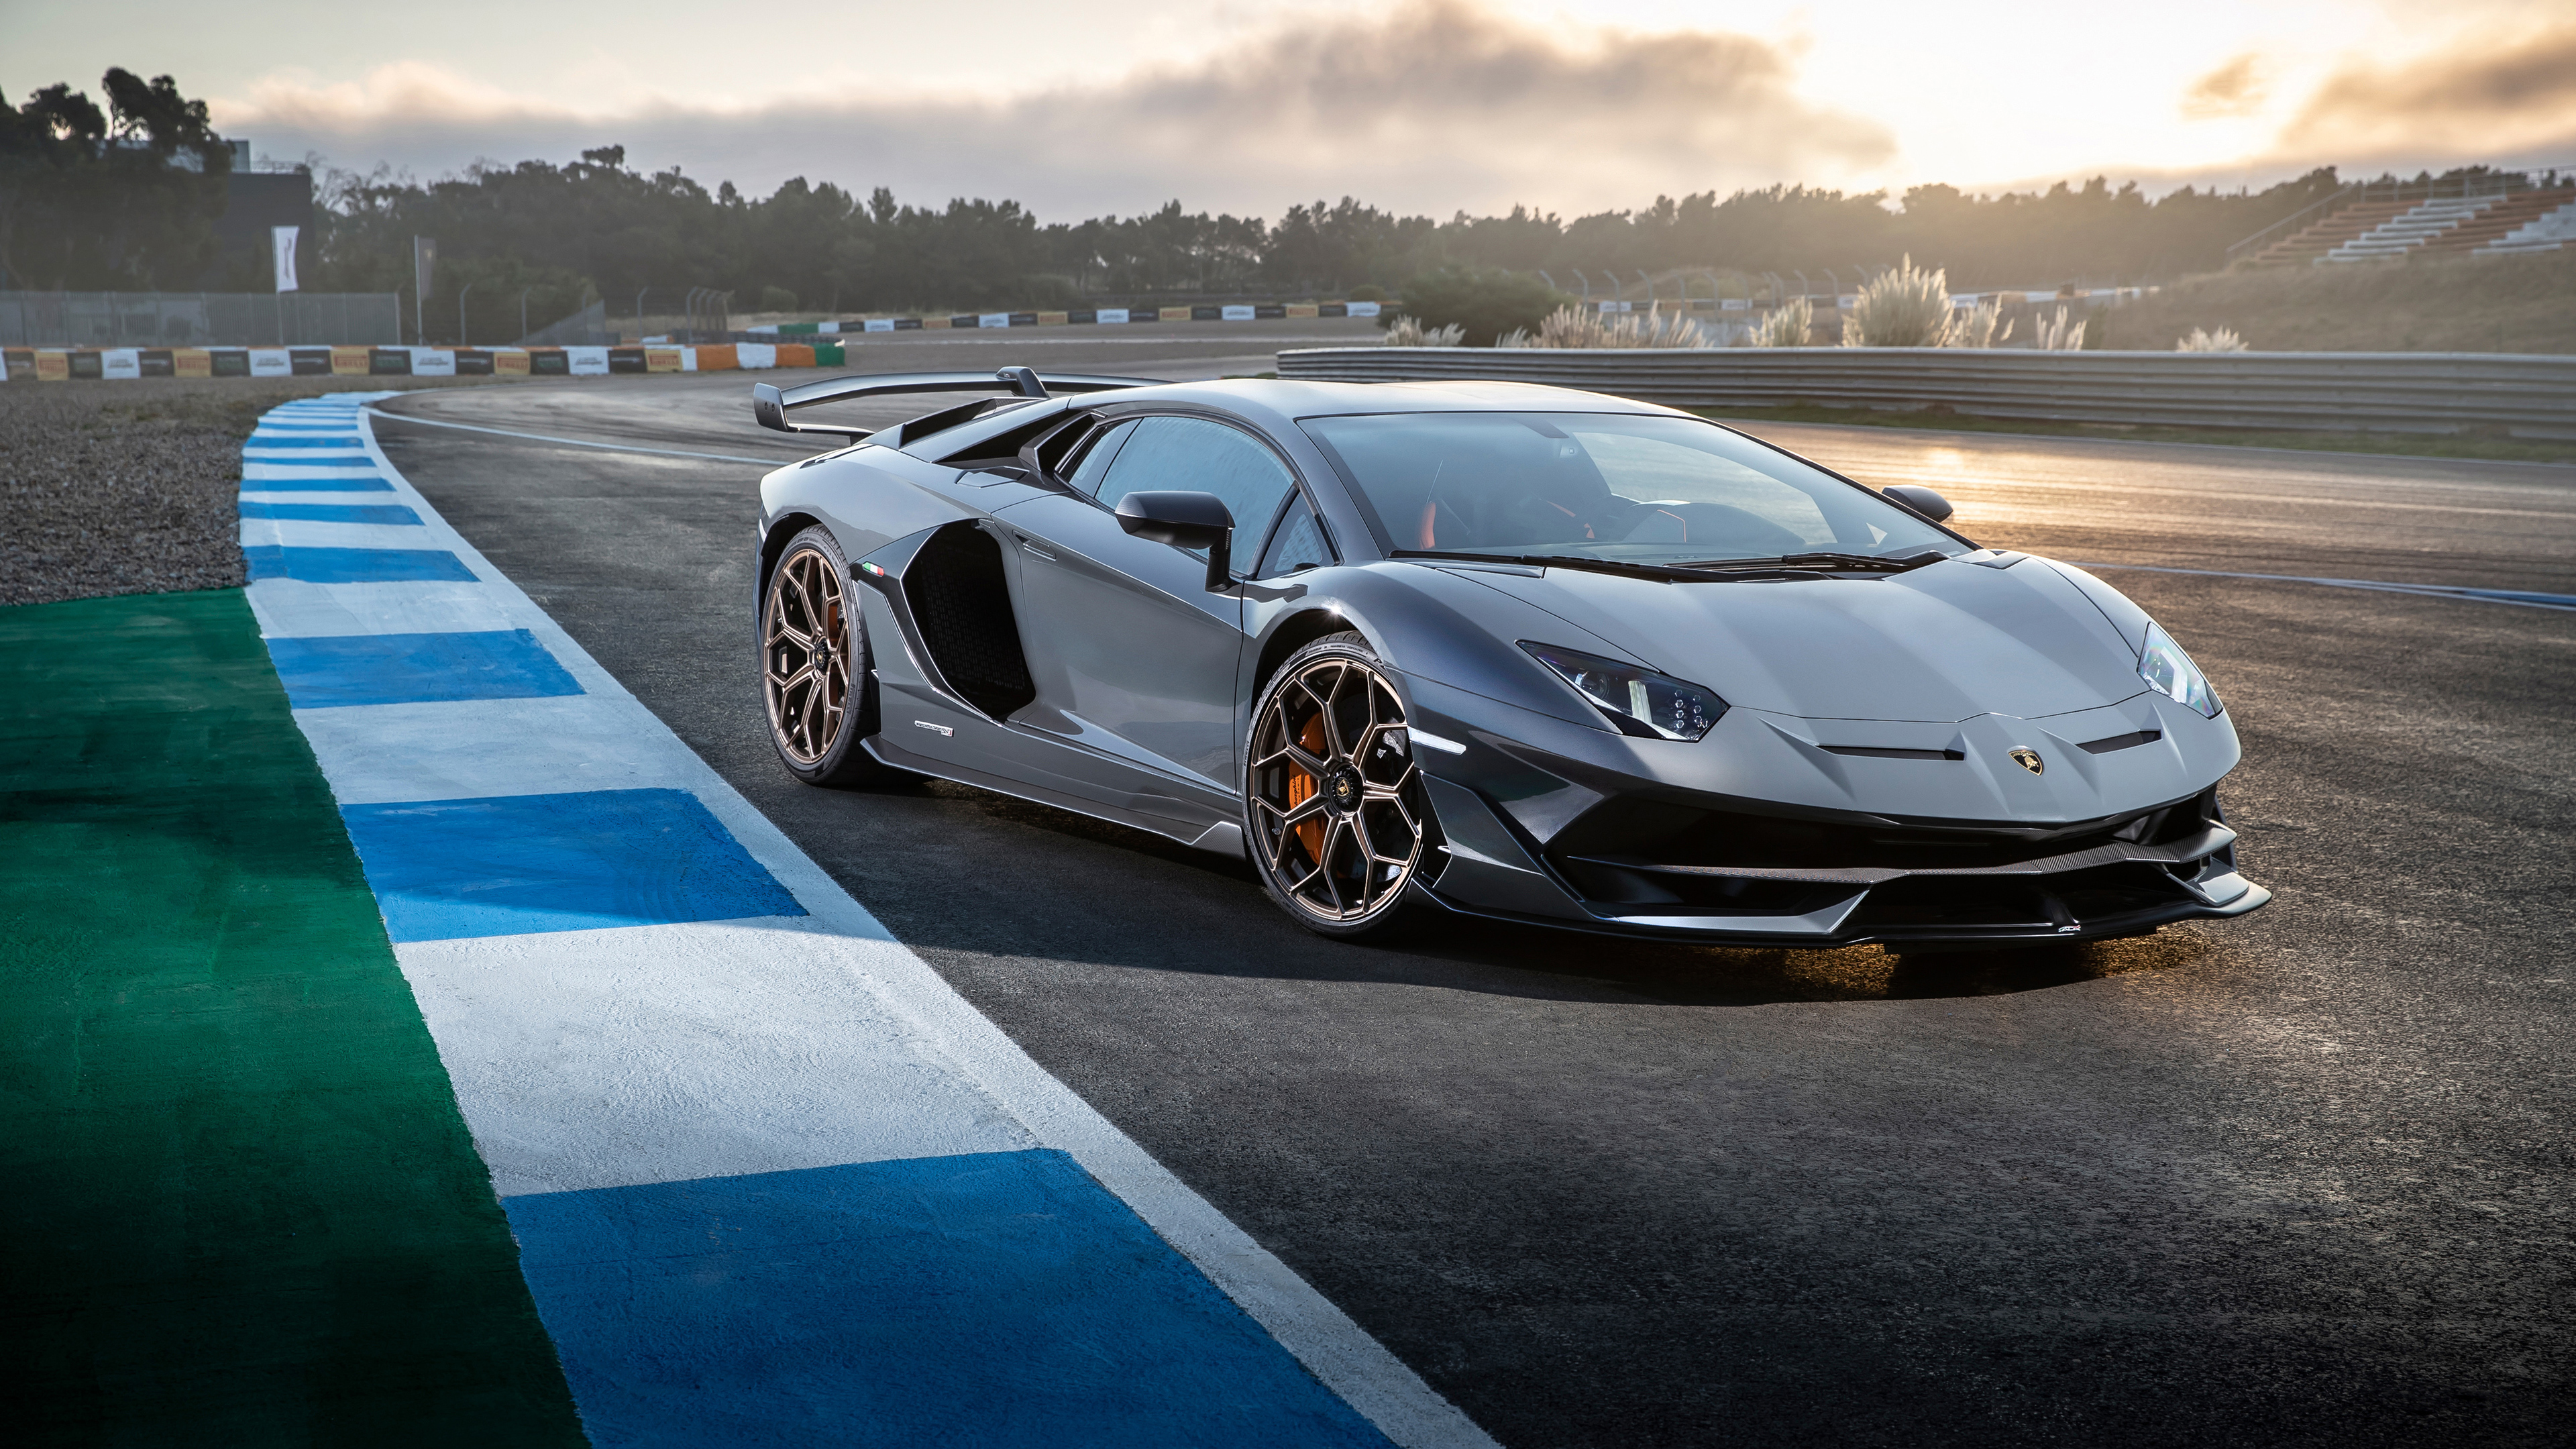 lamborghini aventador svj 2019 4k 1541969448 - Lamborghini Aventador SVJ 2019 4k - lamborghini wallpapers, lamborghini aventador wallpapers, lamborghini aventador svj wallpapers, hd-wallpapers, cars wallpapers, 4k-wallpapers, 2018 cars wallpapers